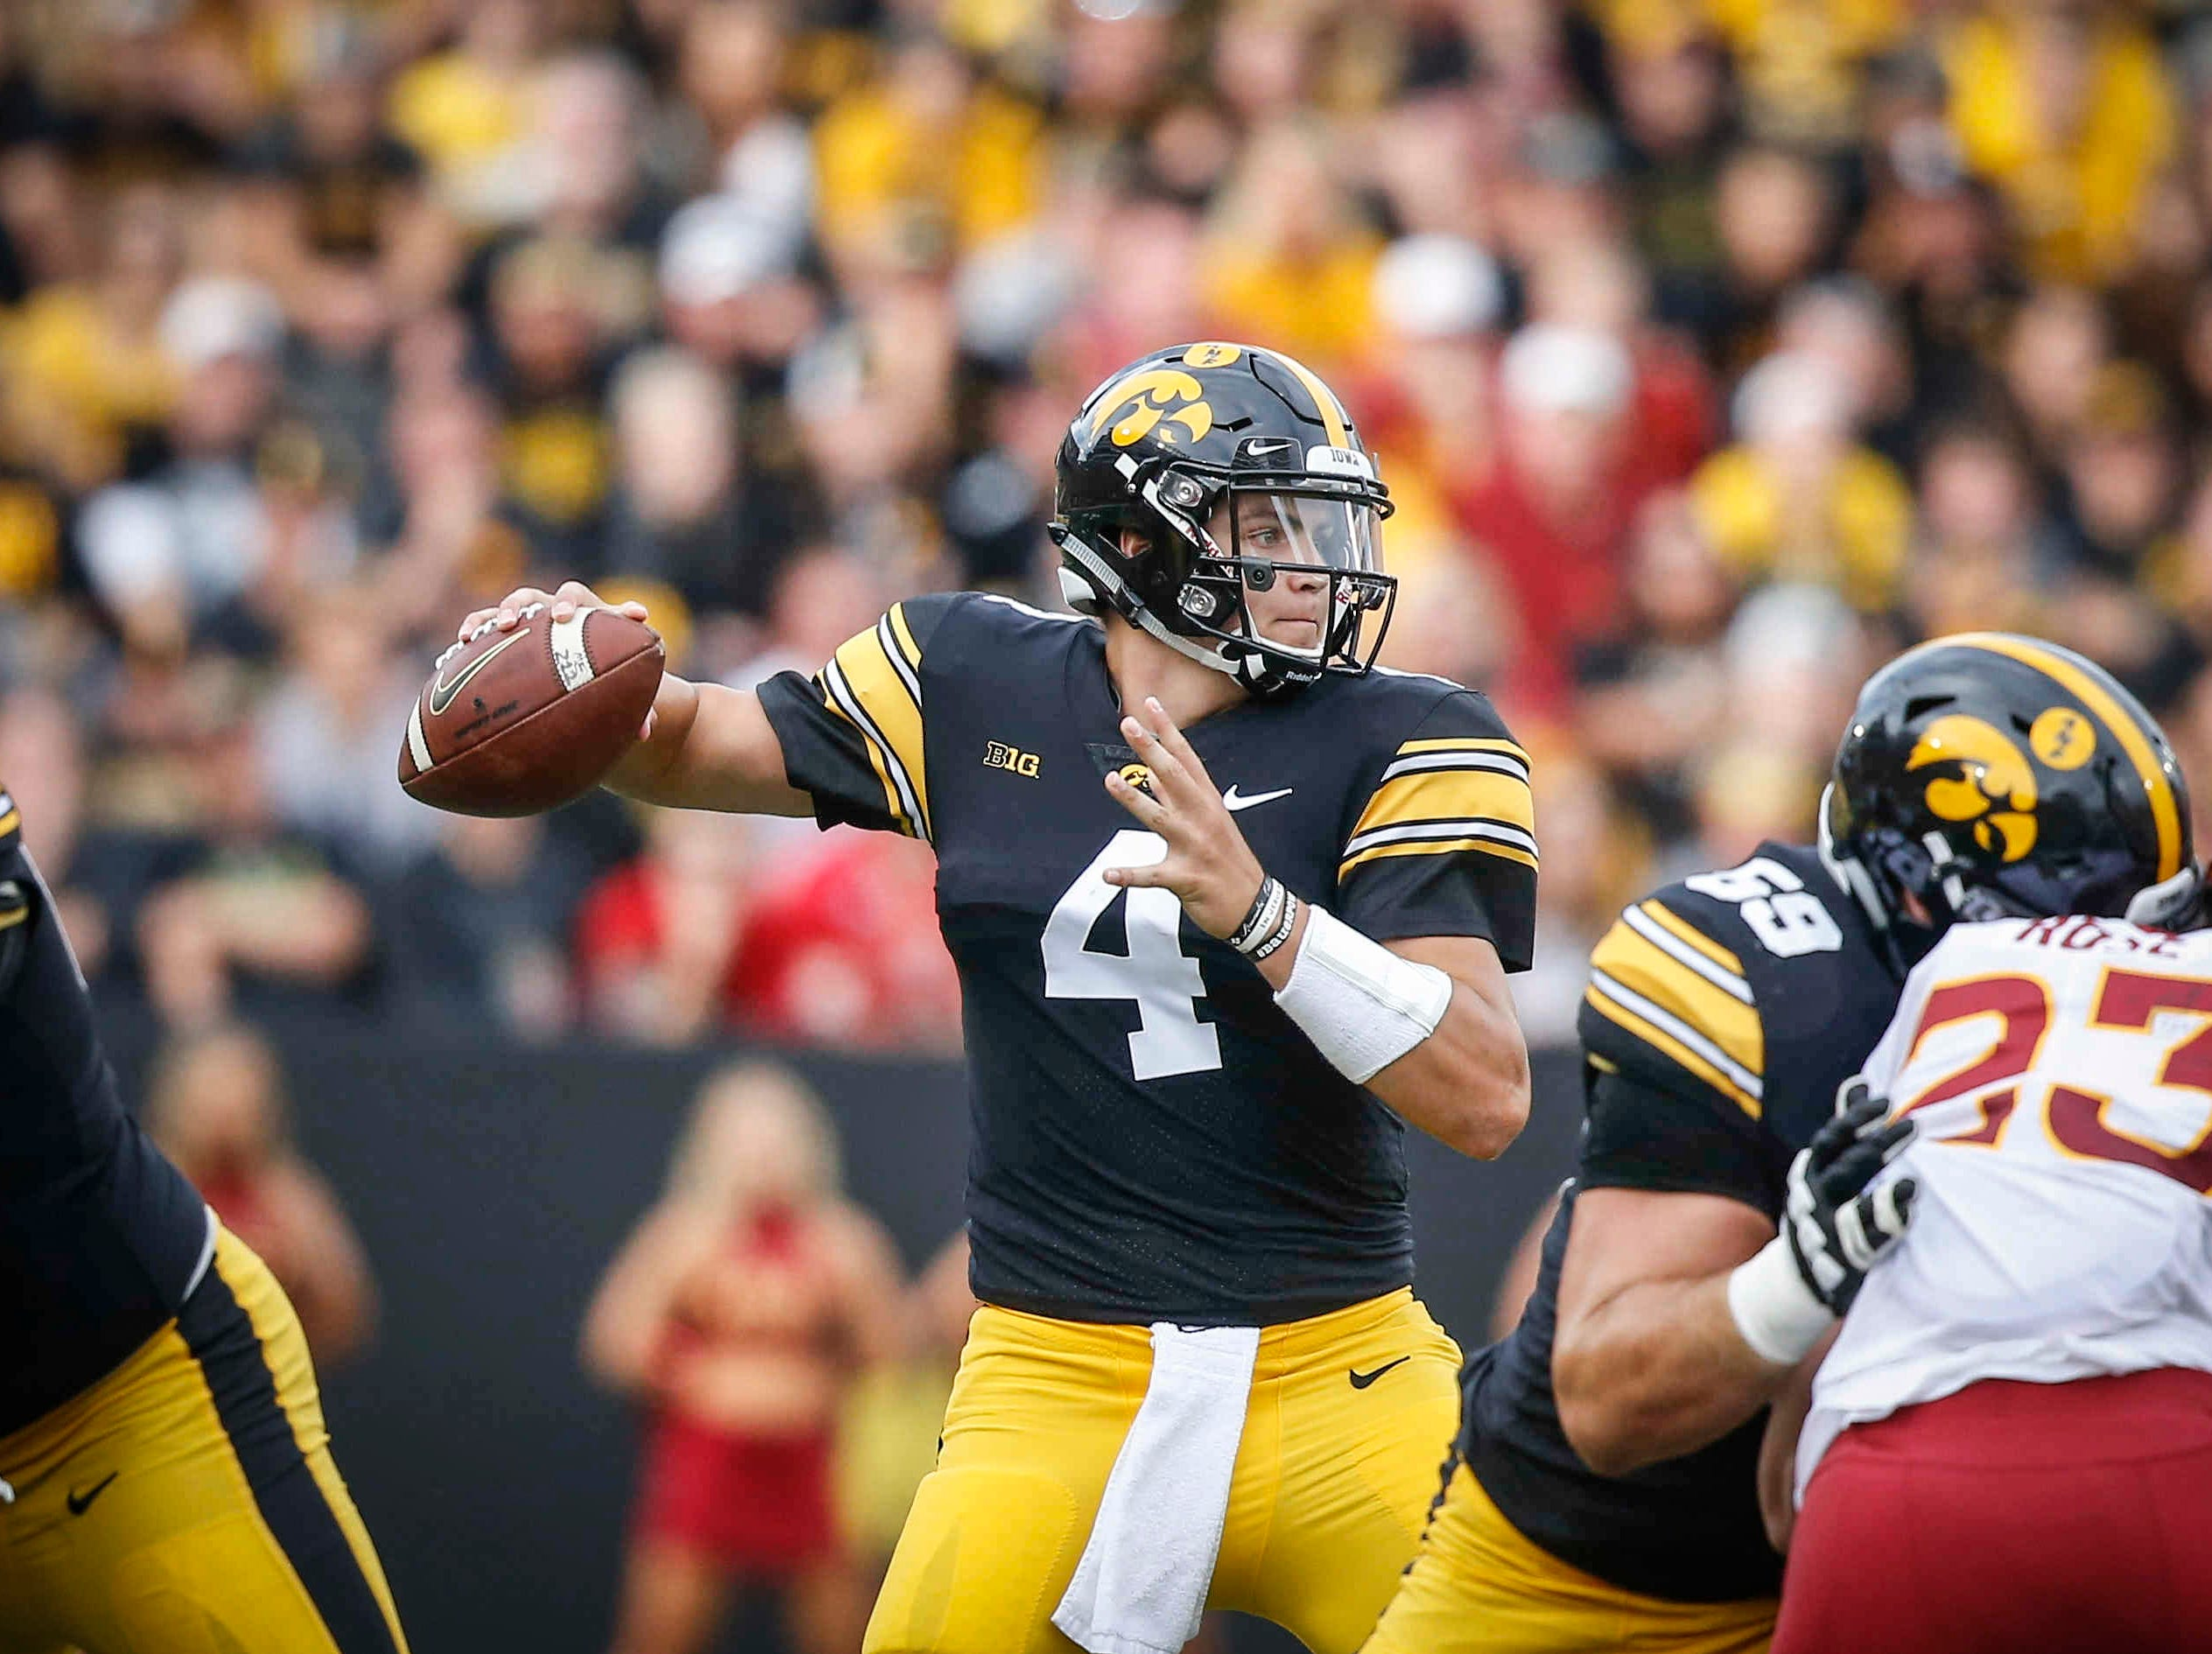 Iowa quarterback Nate Stanley winds back to pass the ball against Iowa State on Saturday, Sept. 8, 2018, at Kinnick Stadium in Iowa City.